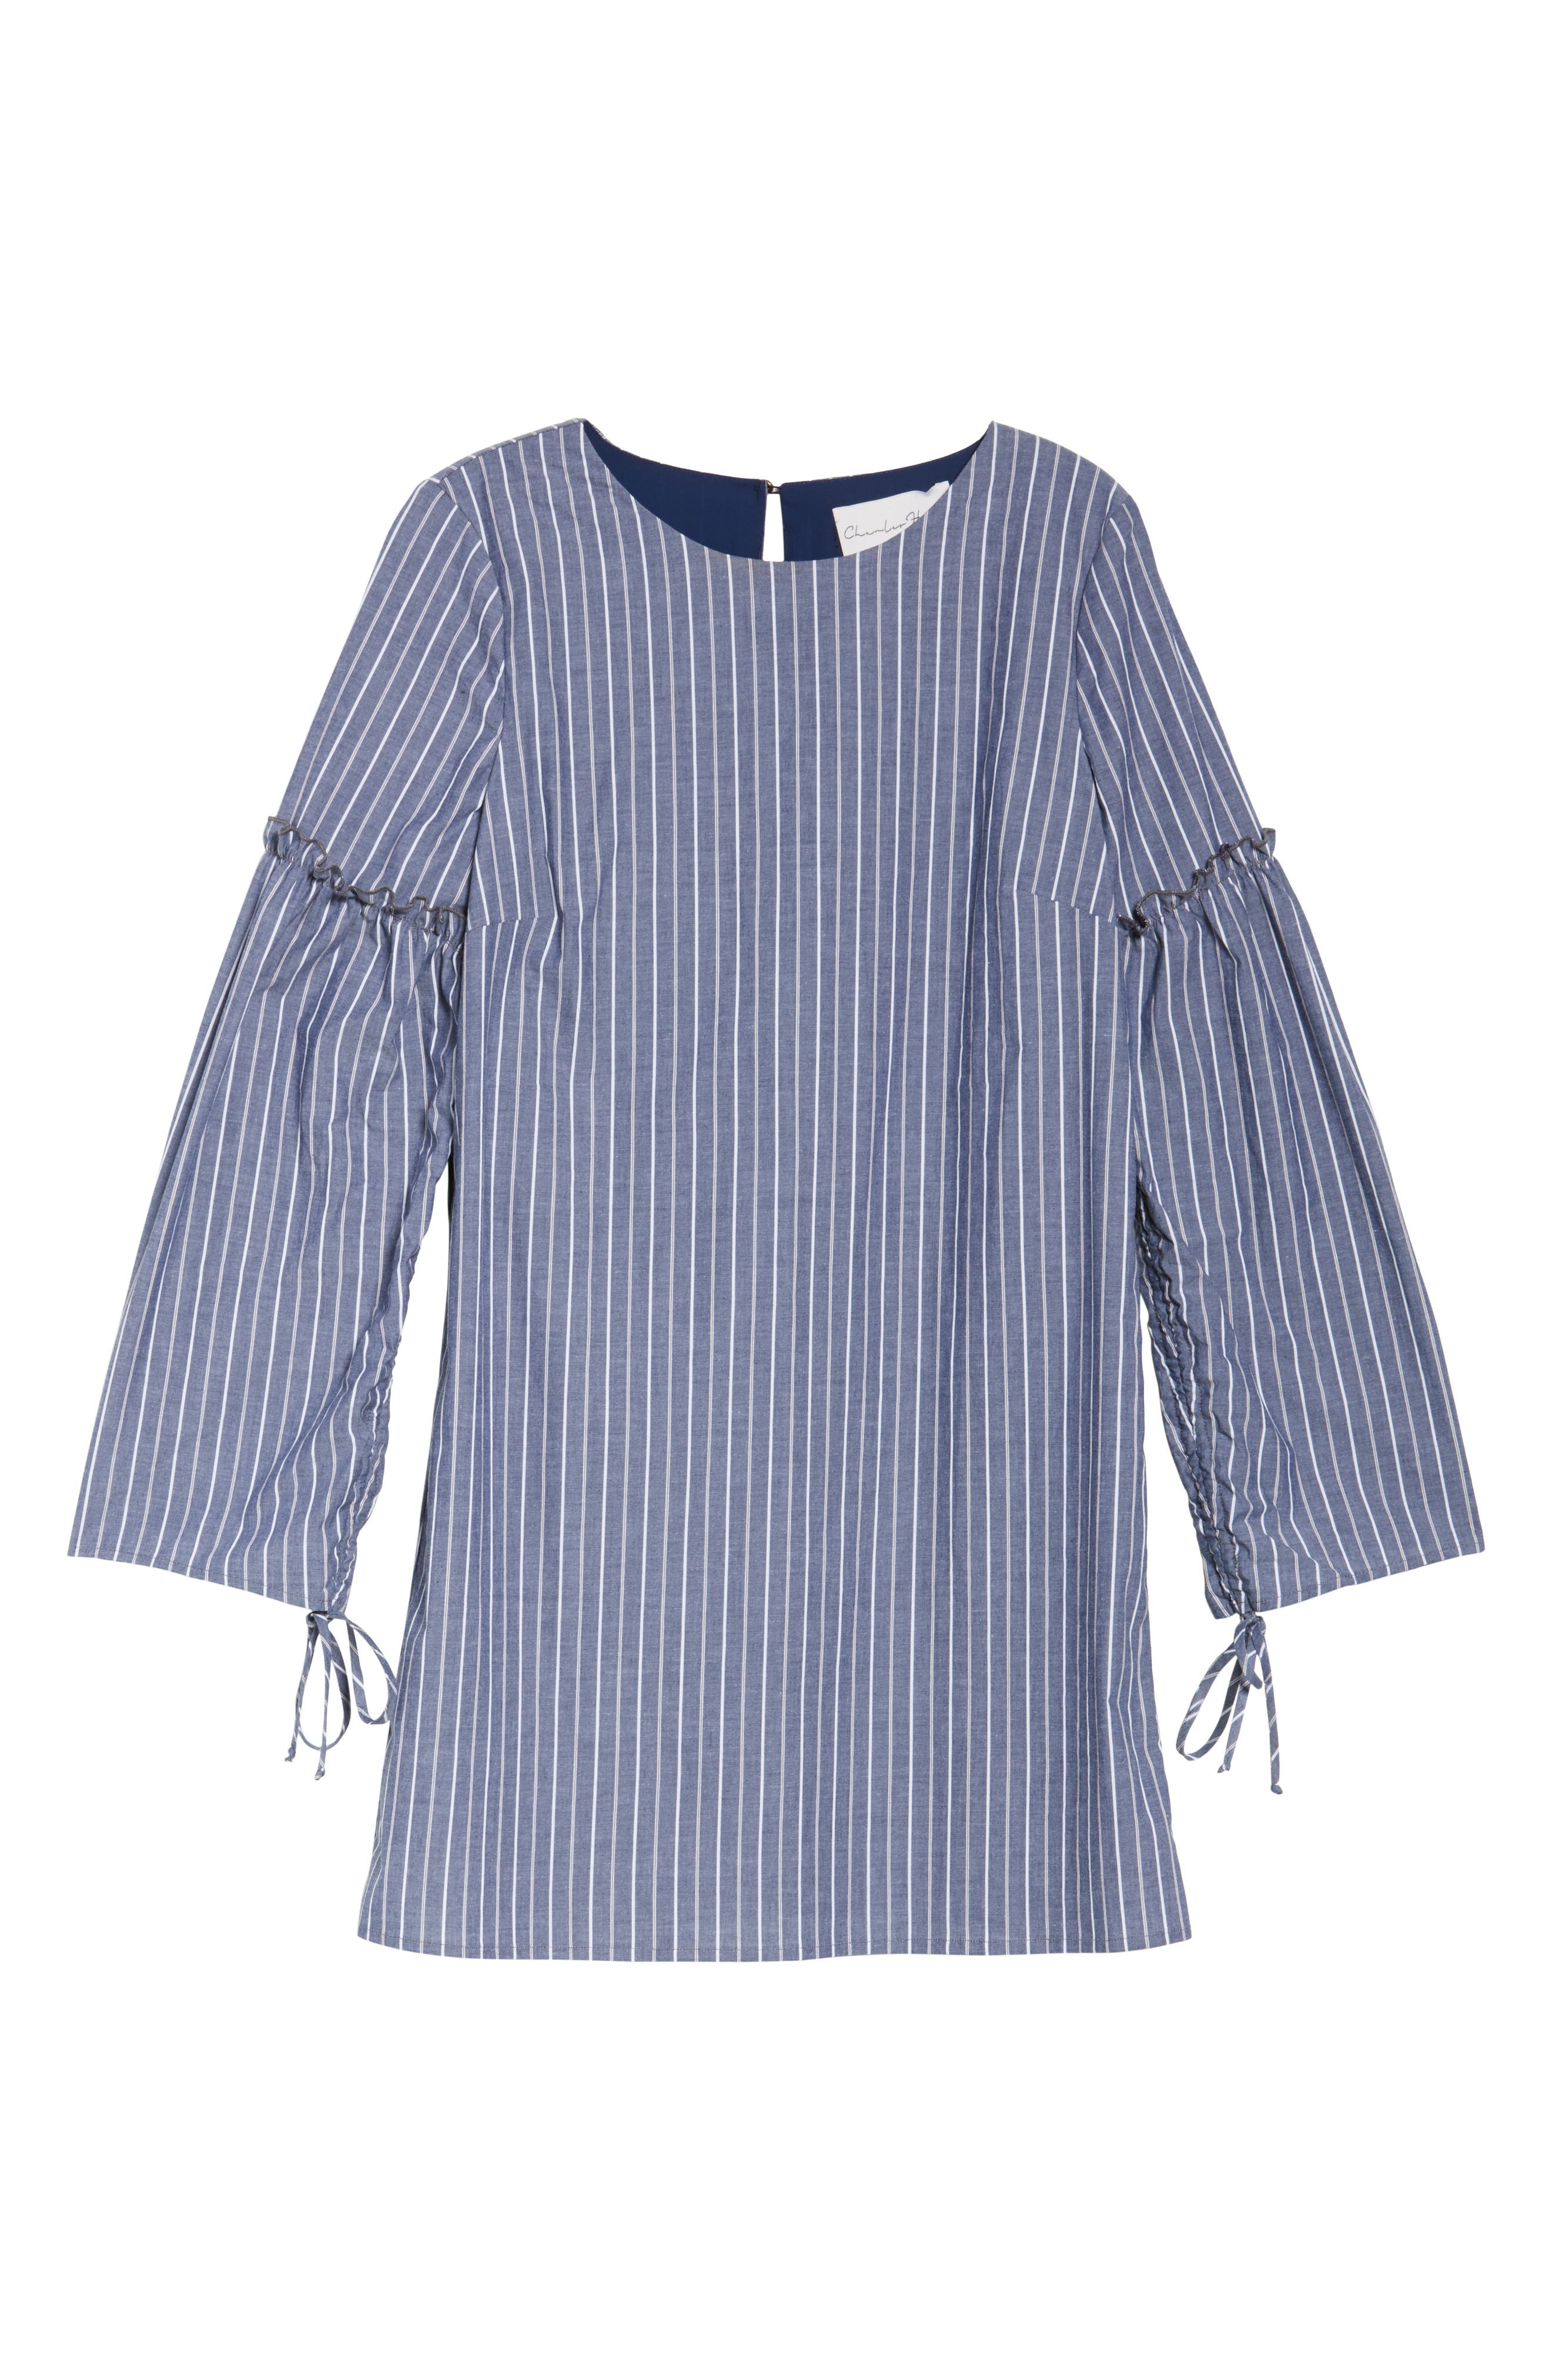 Ruched Sleeve Poplin Shift Dress,                             Alternate thumbnail 6, color,                             Navy Stripe